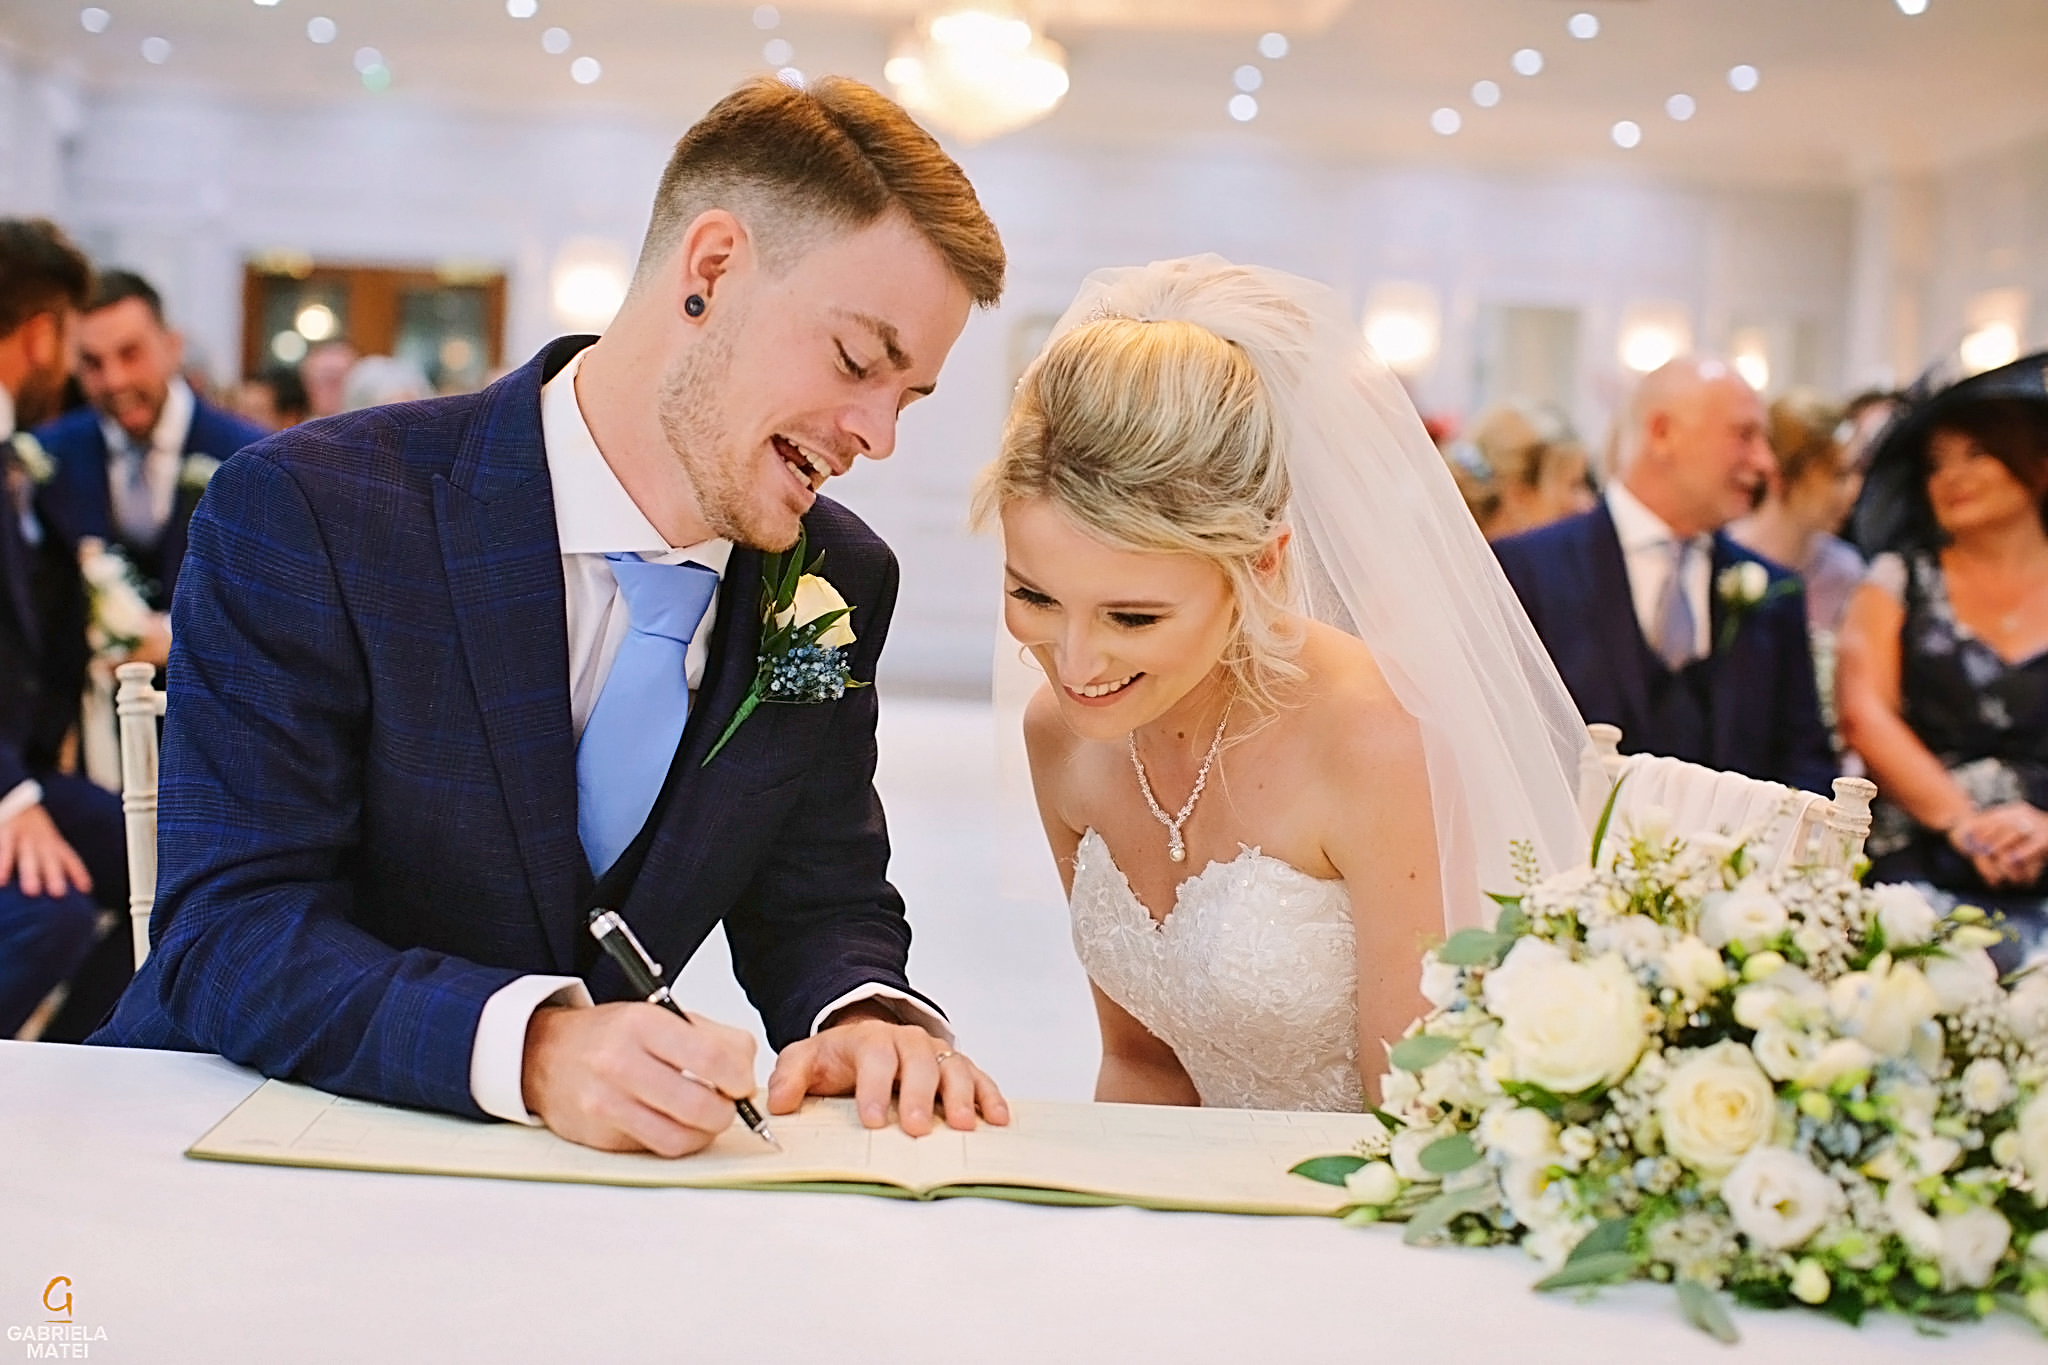 Bride and Groom signing the register during civil wedding in London venue